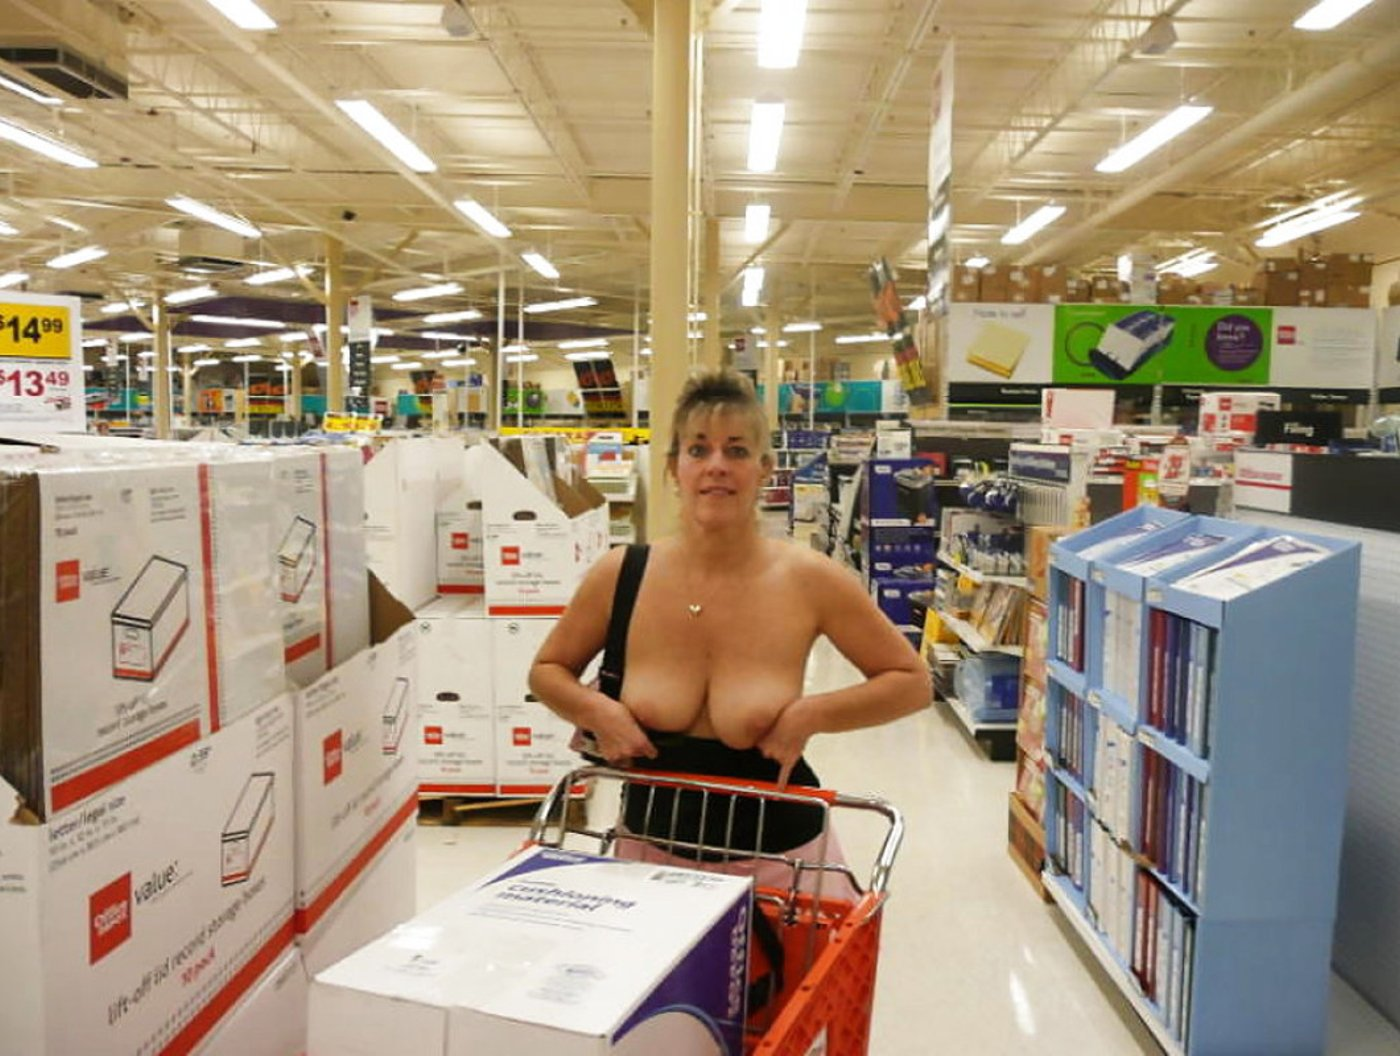 Mature lady showing her boobs and posing topless inside a shop